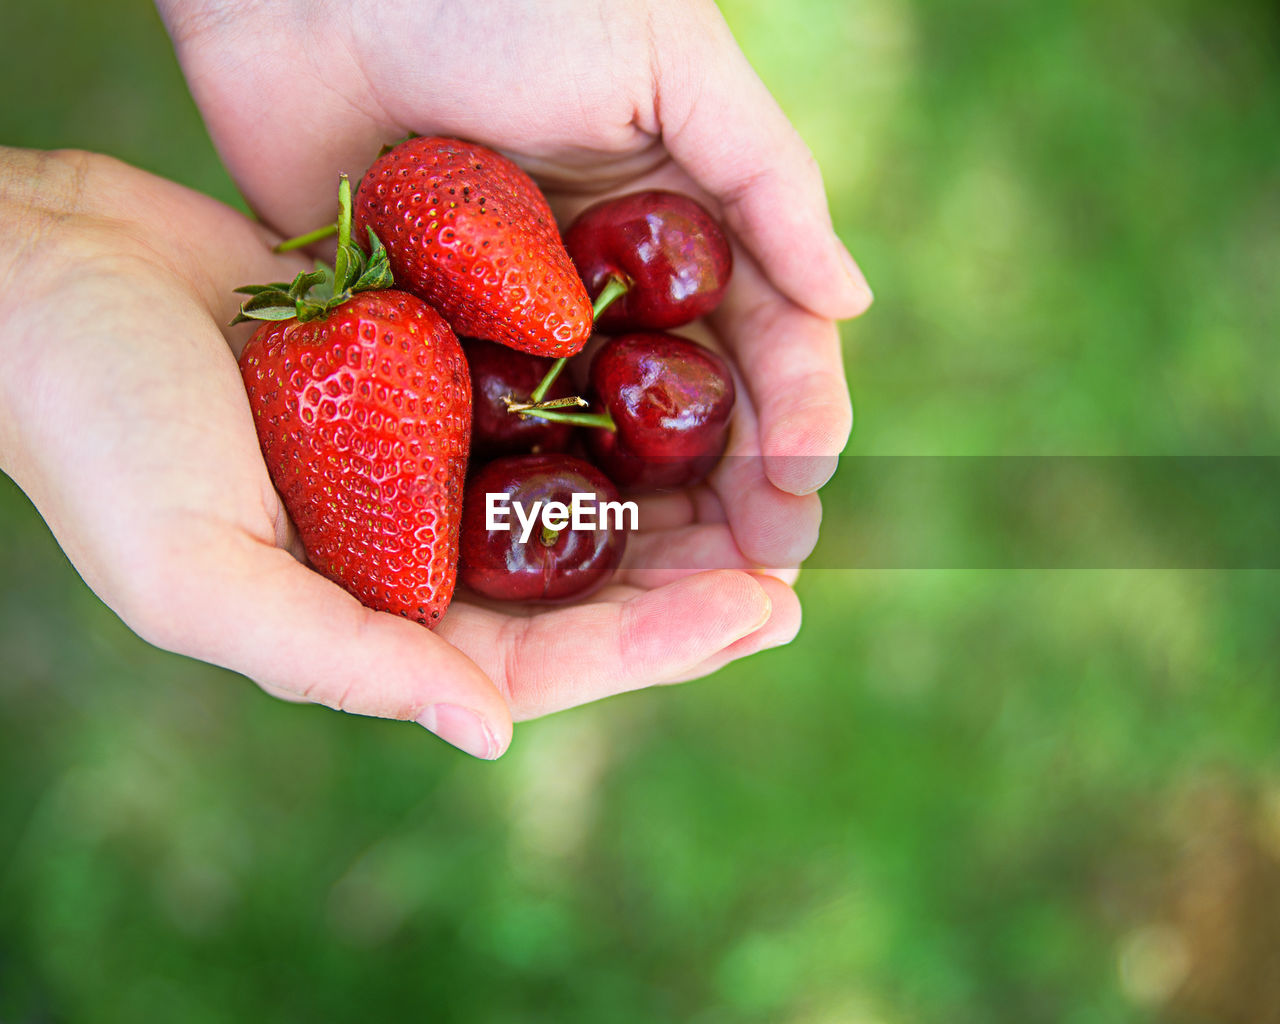 Cropped Image Of Hand Holding Fruits